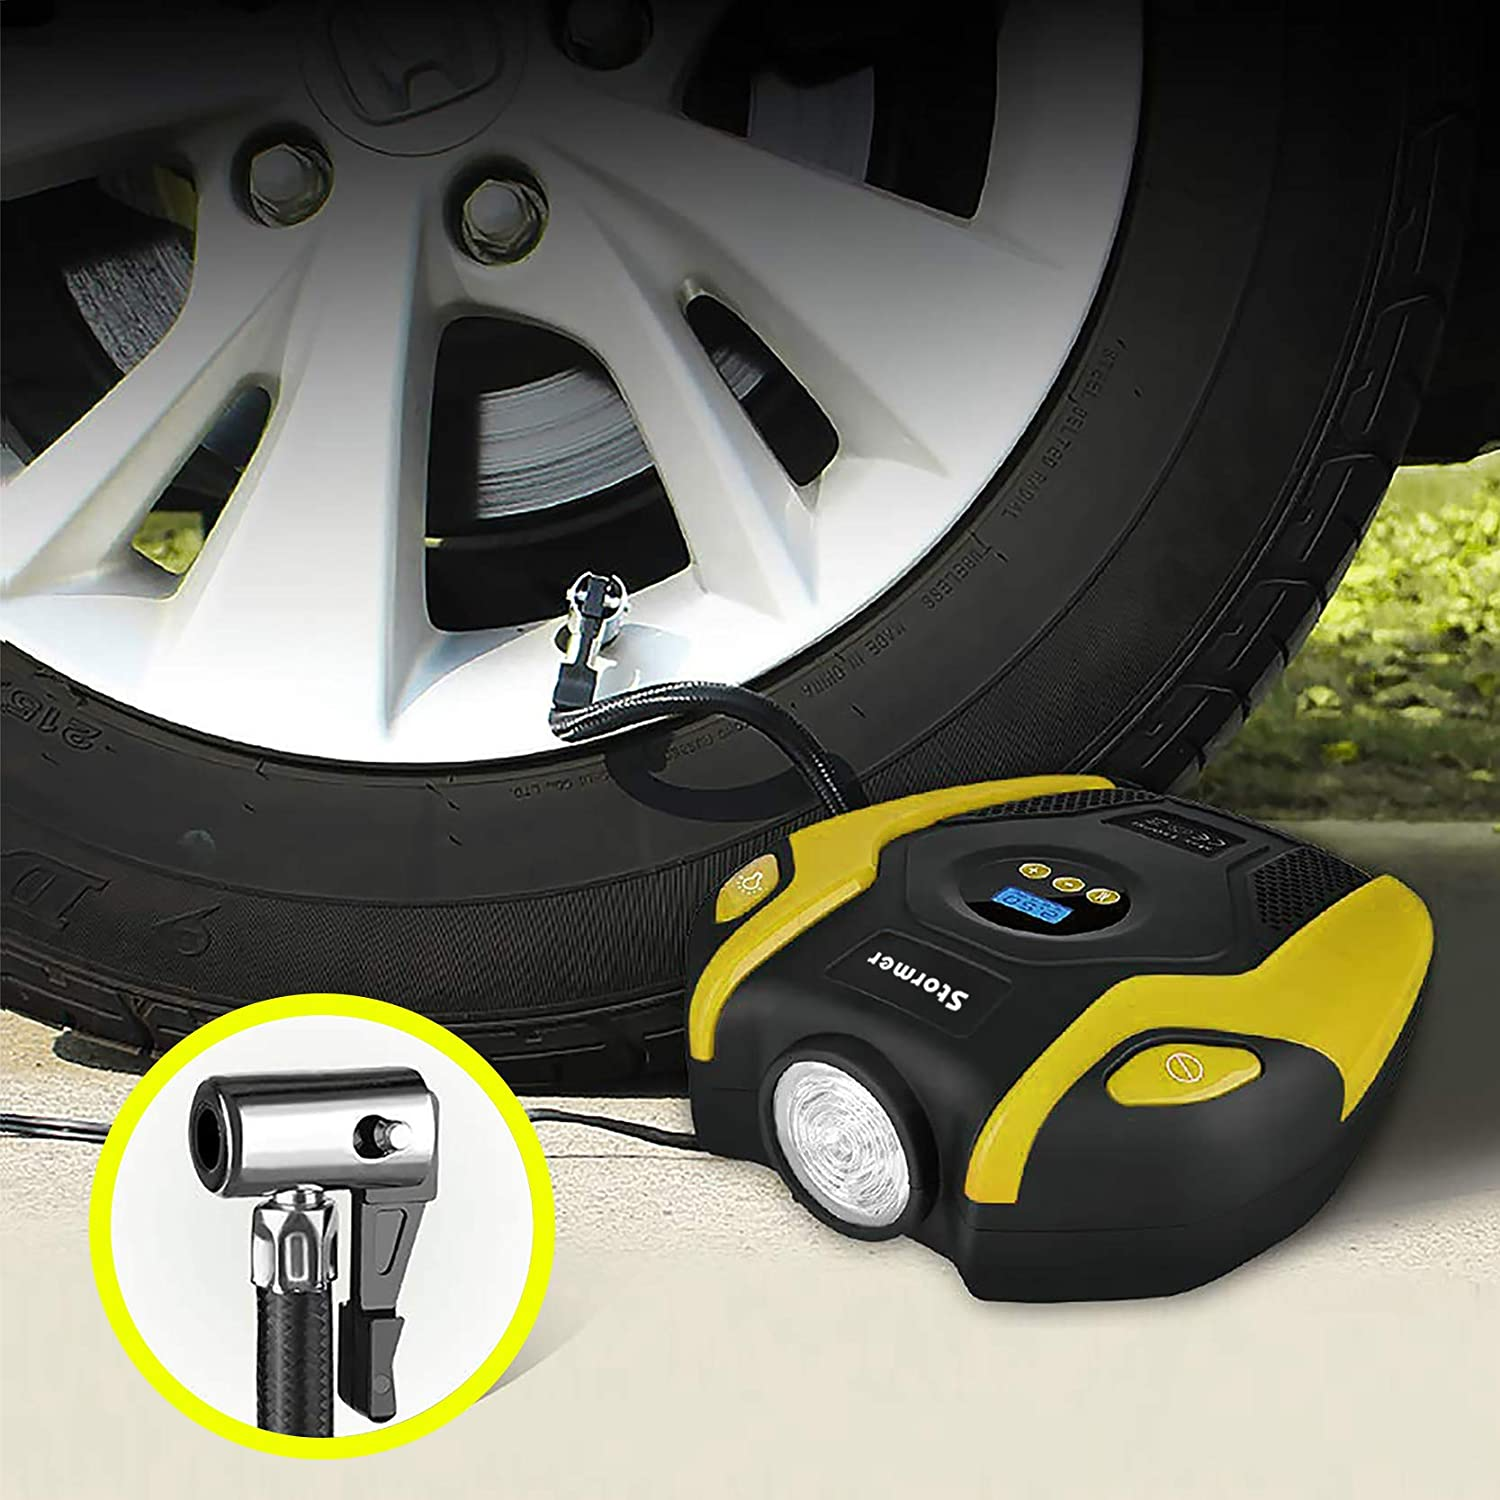 Bicycle and Other Inflatable /… Tire Inflator STORMER Air Compressor Pump 12V DC Portable Auto Tire Pump with Digital Display up to 151PSI for Car